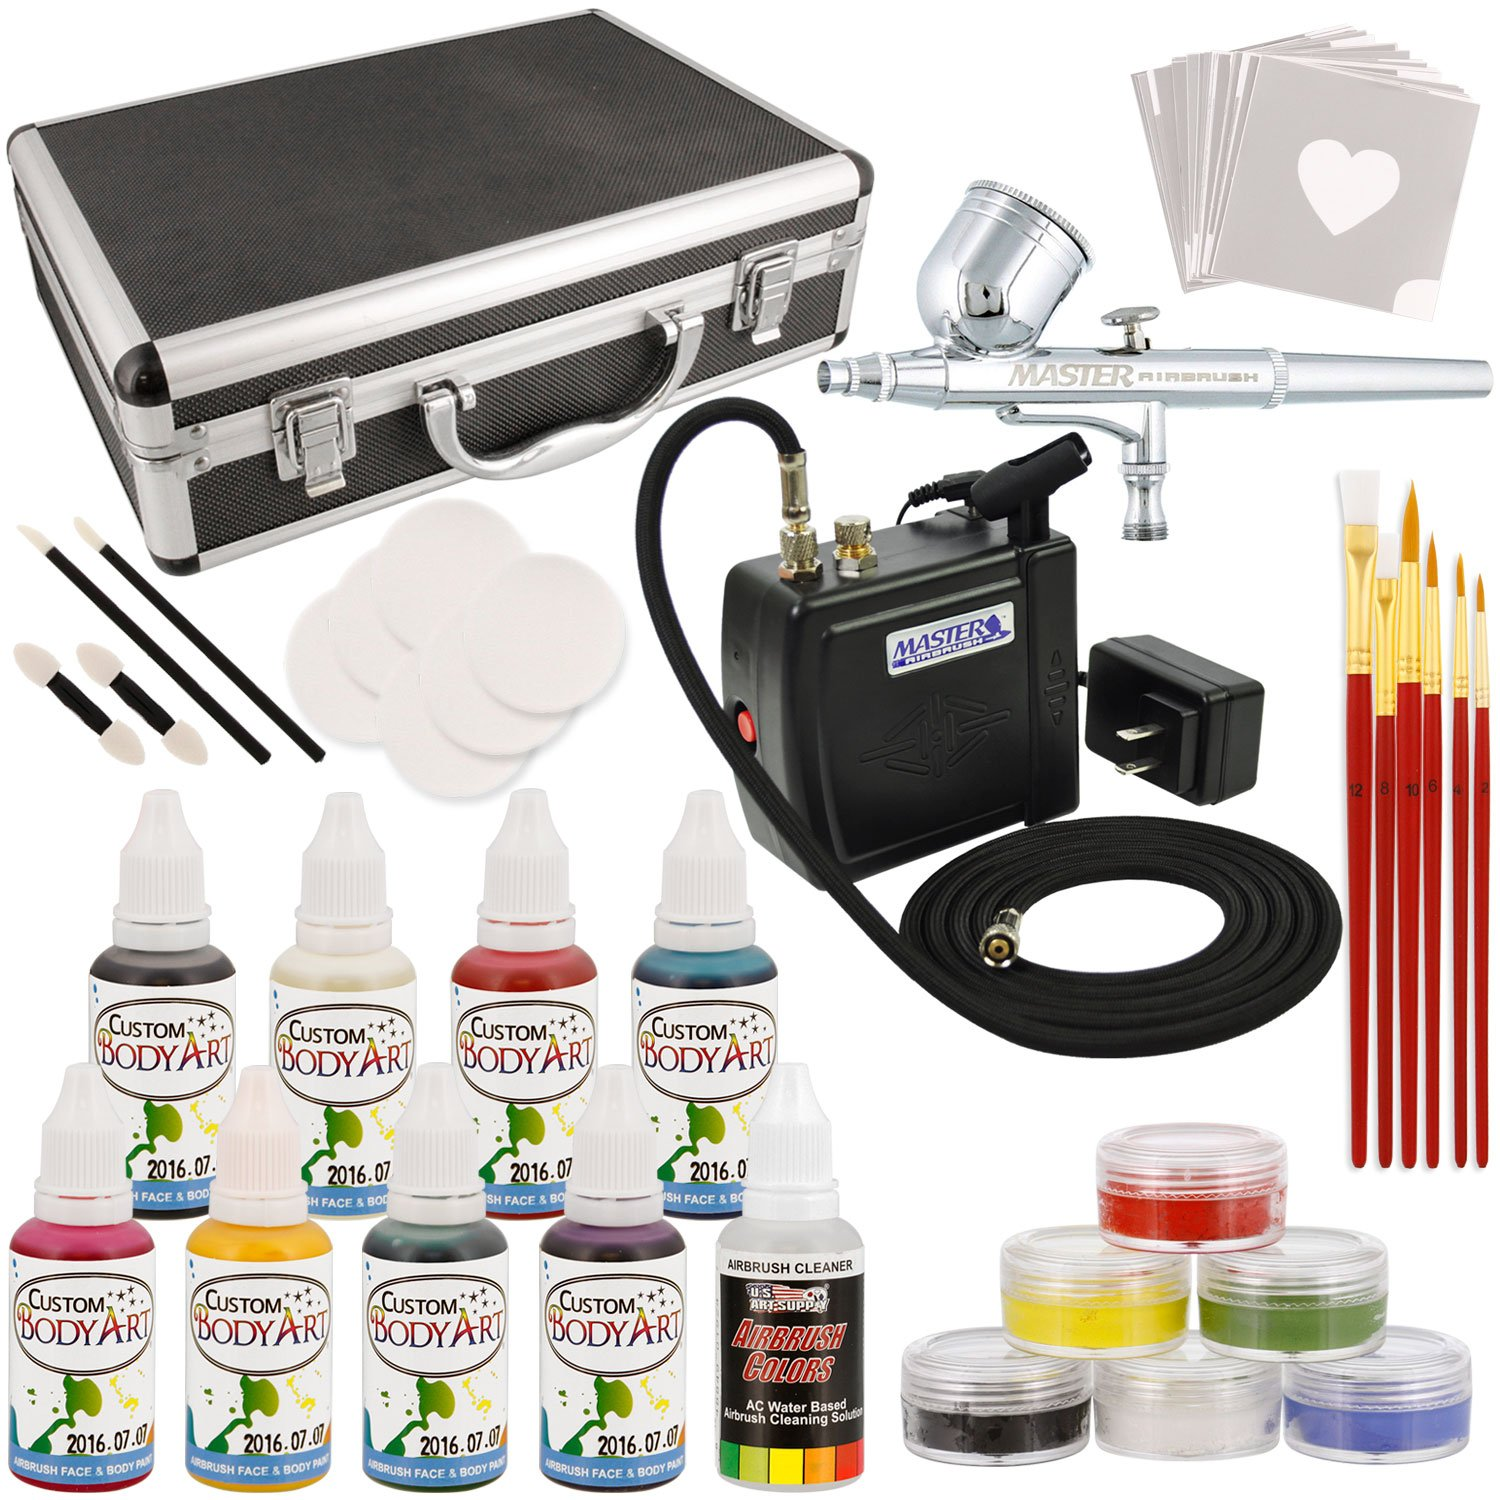 Master Airbrush Deluxe Face and Body Painting Kit with 16 Water-Based Airbrush Colors, 6 - 10ml Face Paint Colors, Brushes, Sponges and Aluminum Storage Case by Master Airbrush